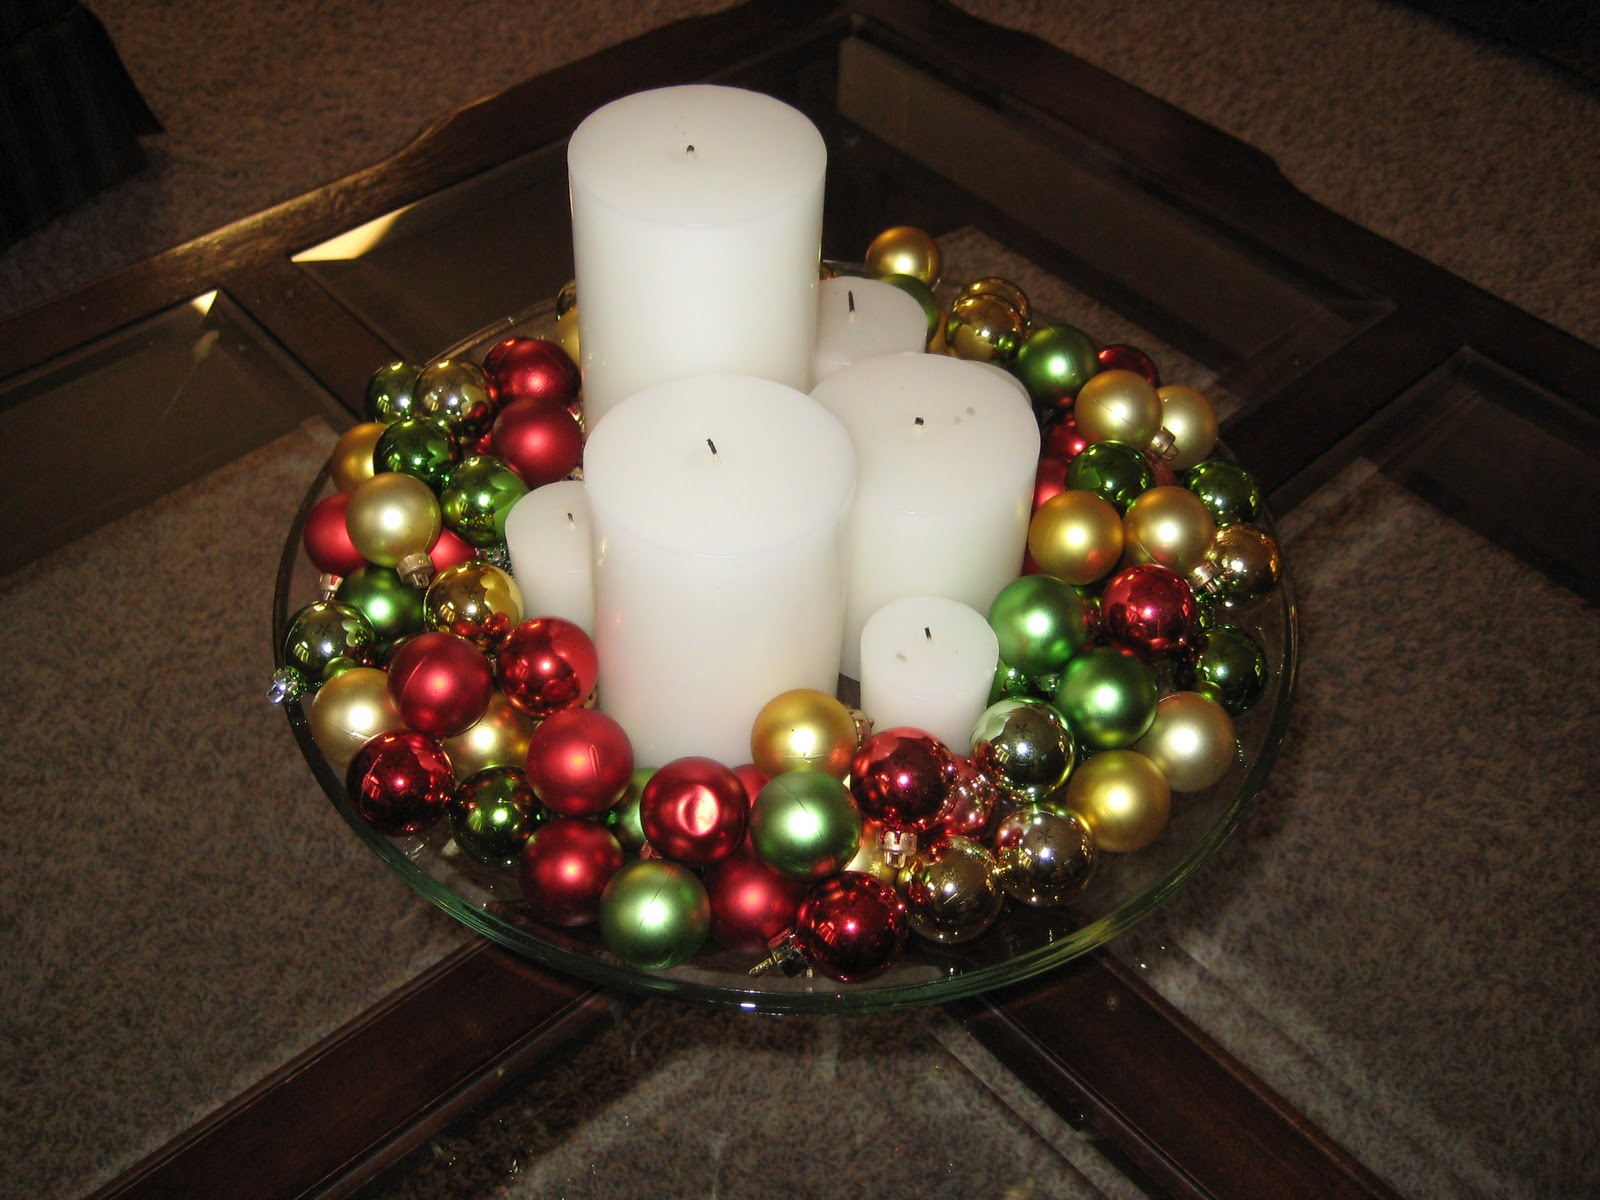 christmas decoration with ornaments - Easy Christmas Table Decorations Ideas